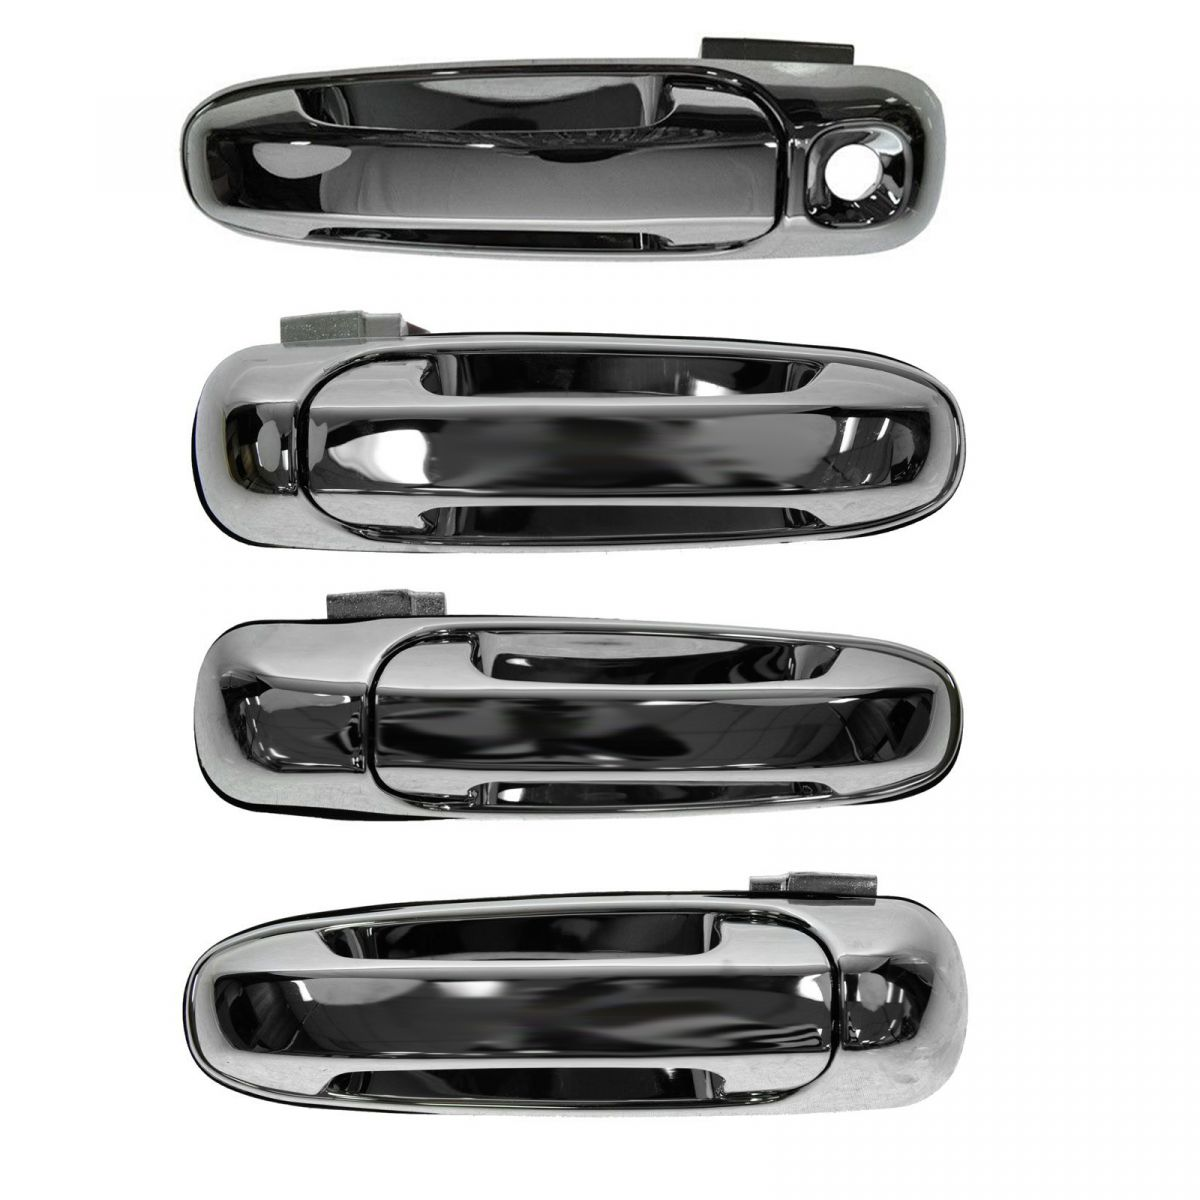 Front Rear Chrome External Outside Door Handle Kit Set 4pc for Maxima Murano